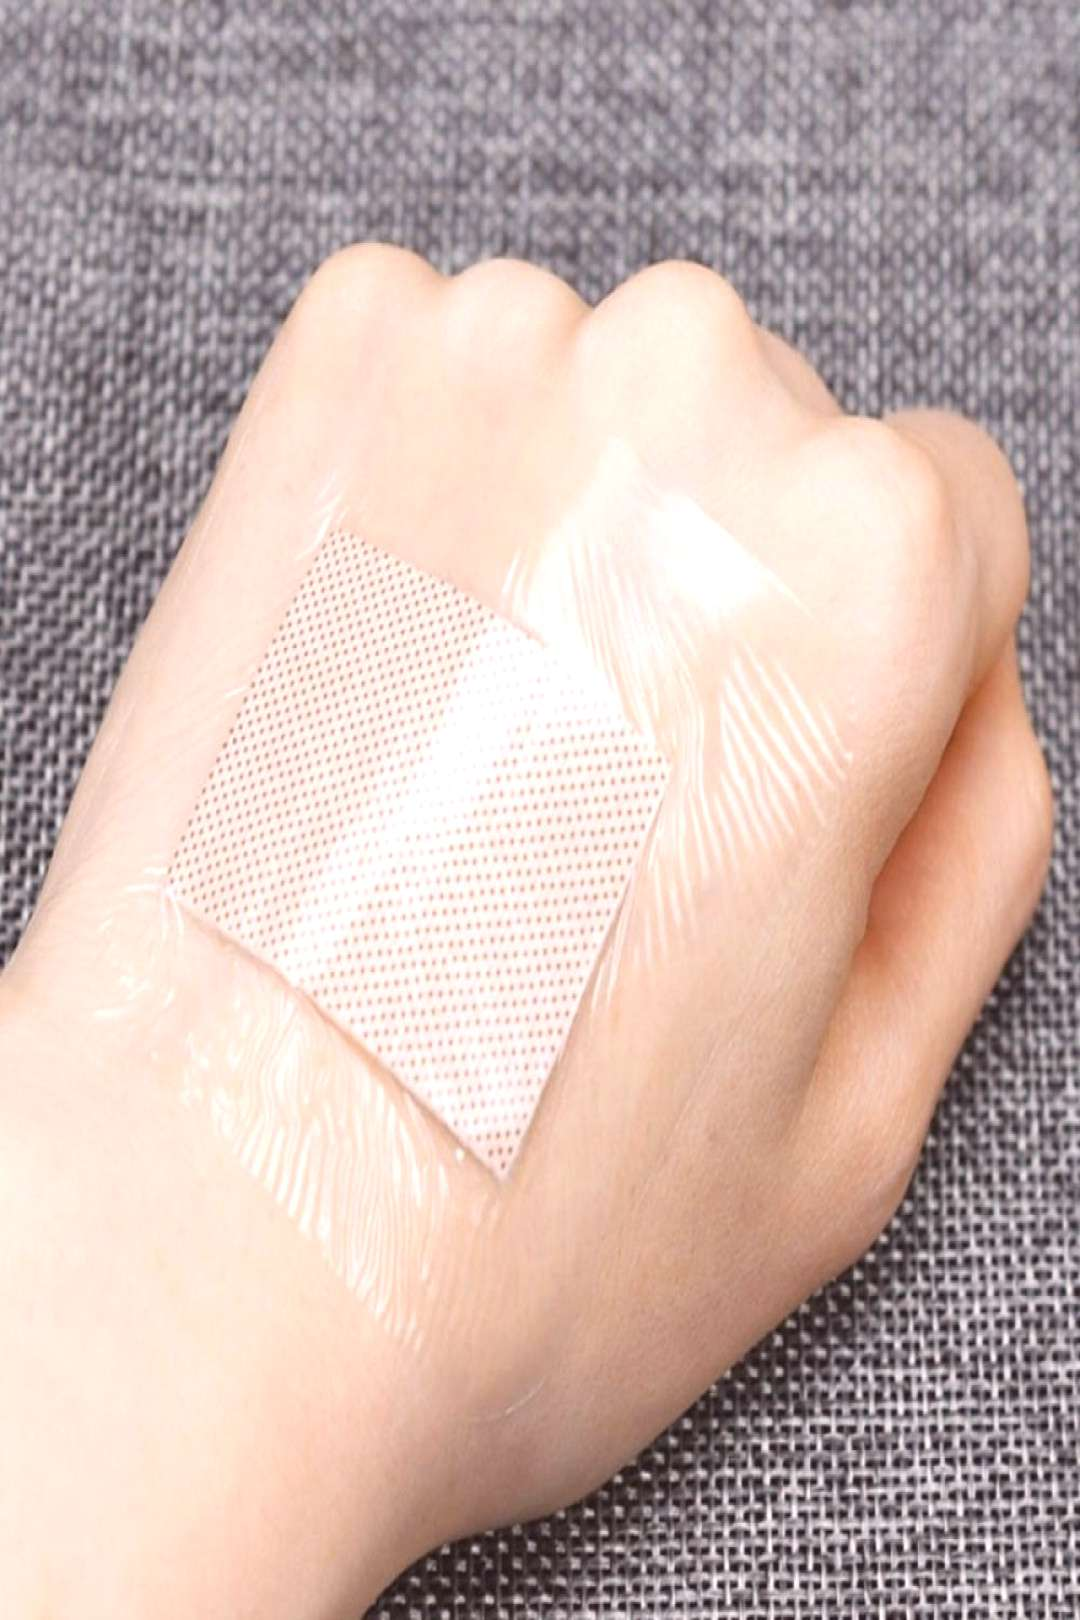 30Pcs/Pack Waterproof Band-Aid Wound Dressing Medical Transparent Sterile Tape For Swimming Bath Wo